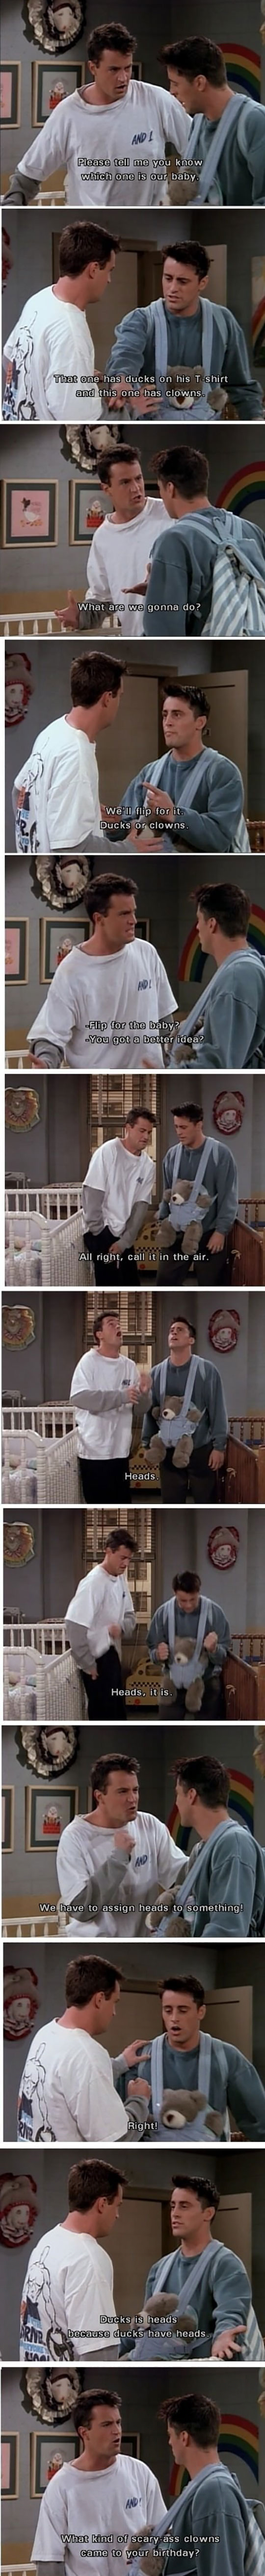 Friends Has Some Greatness Moments